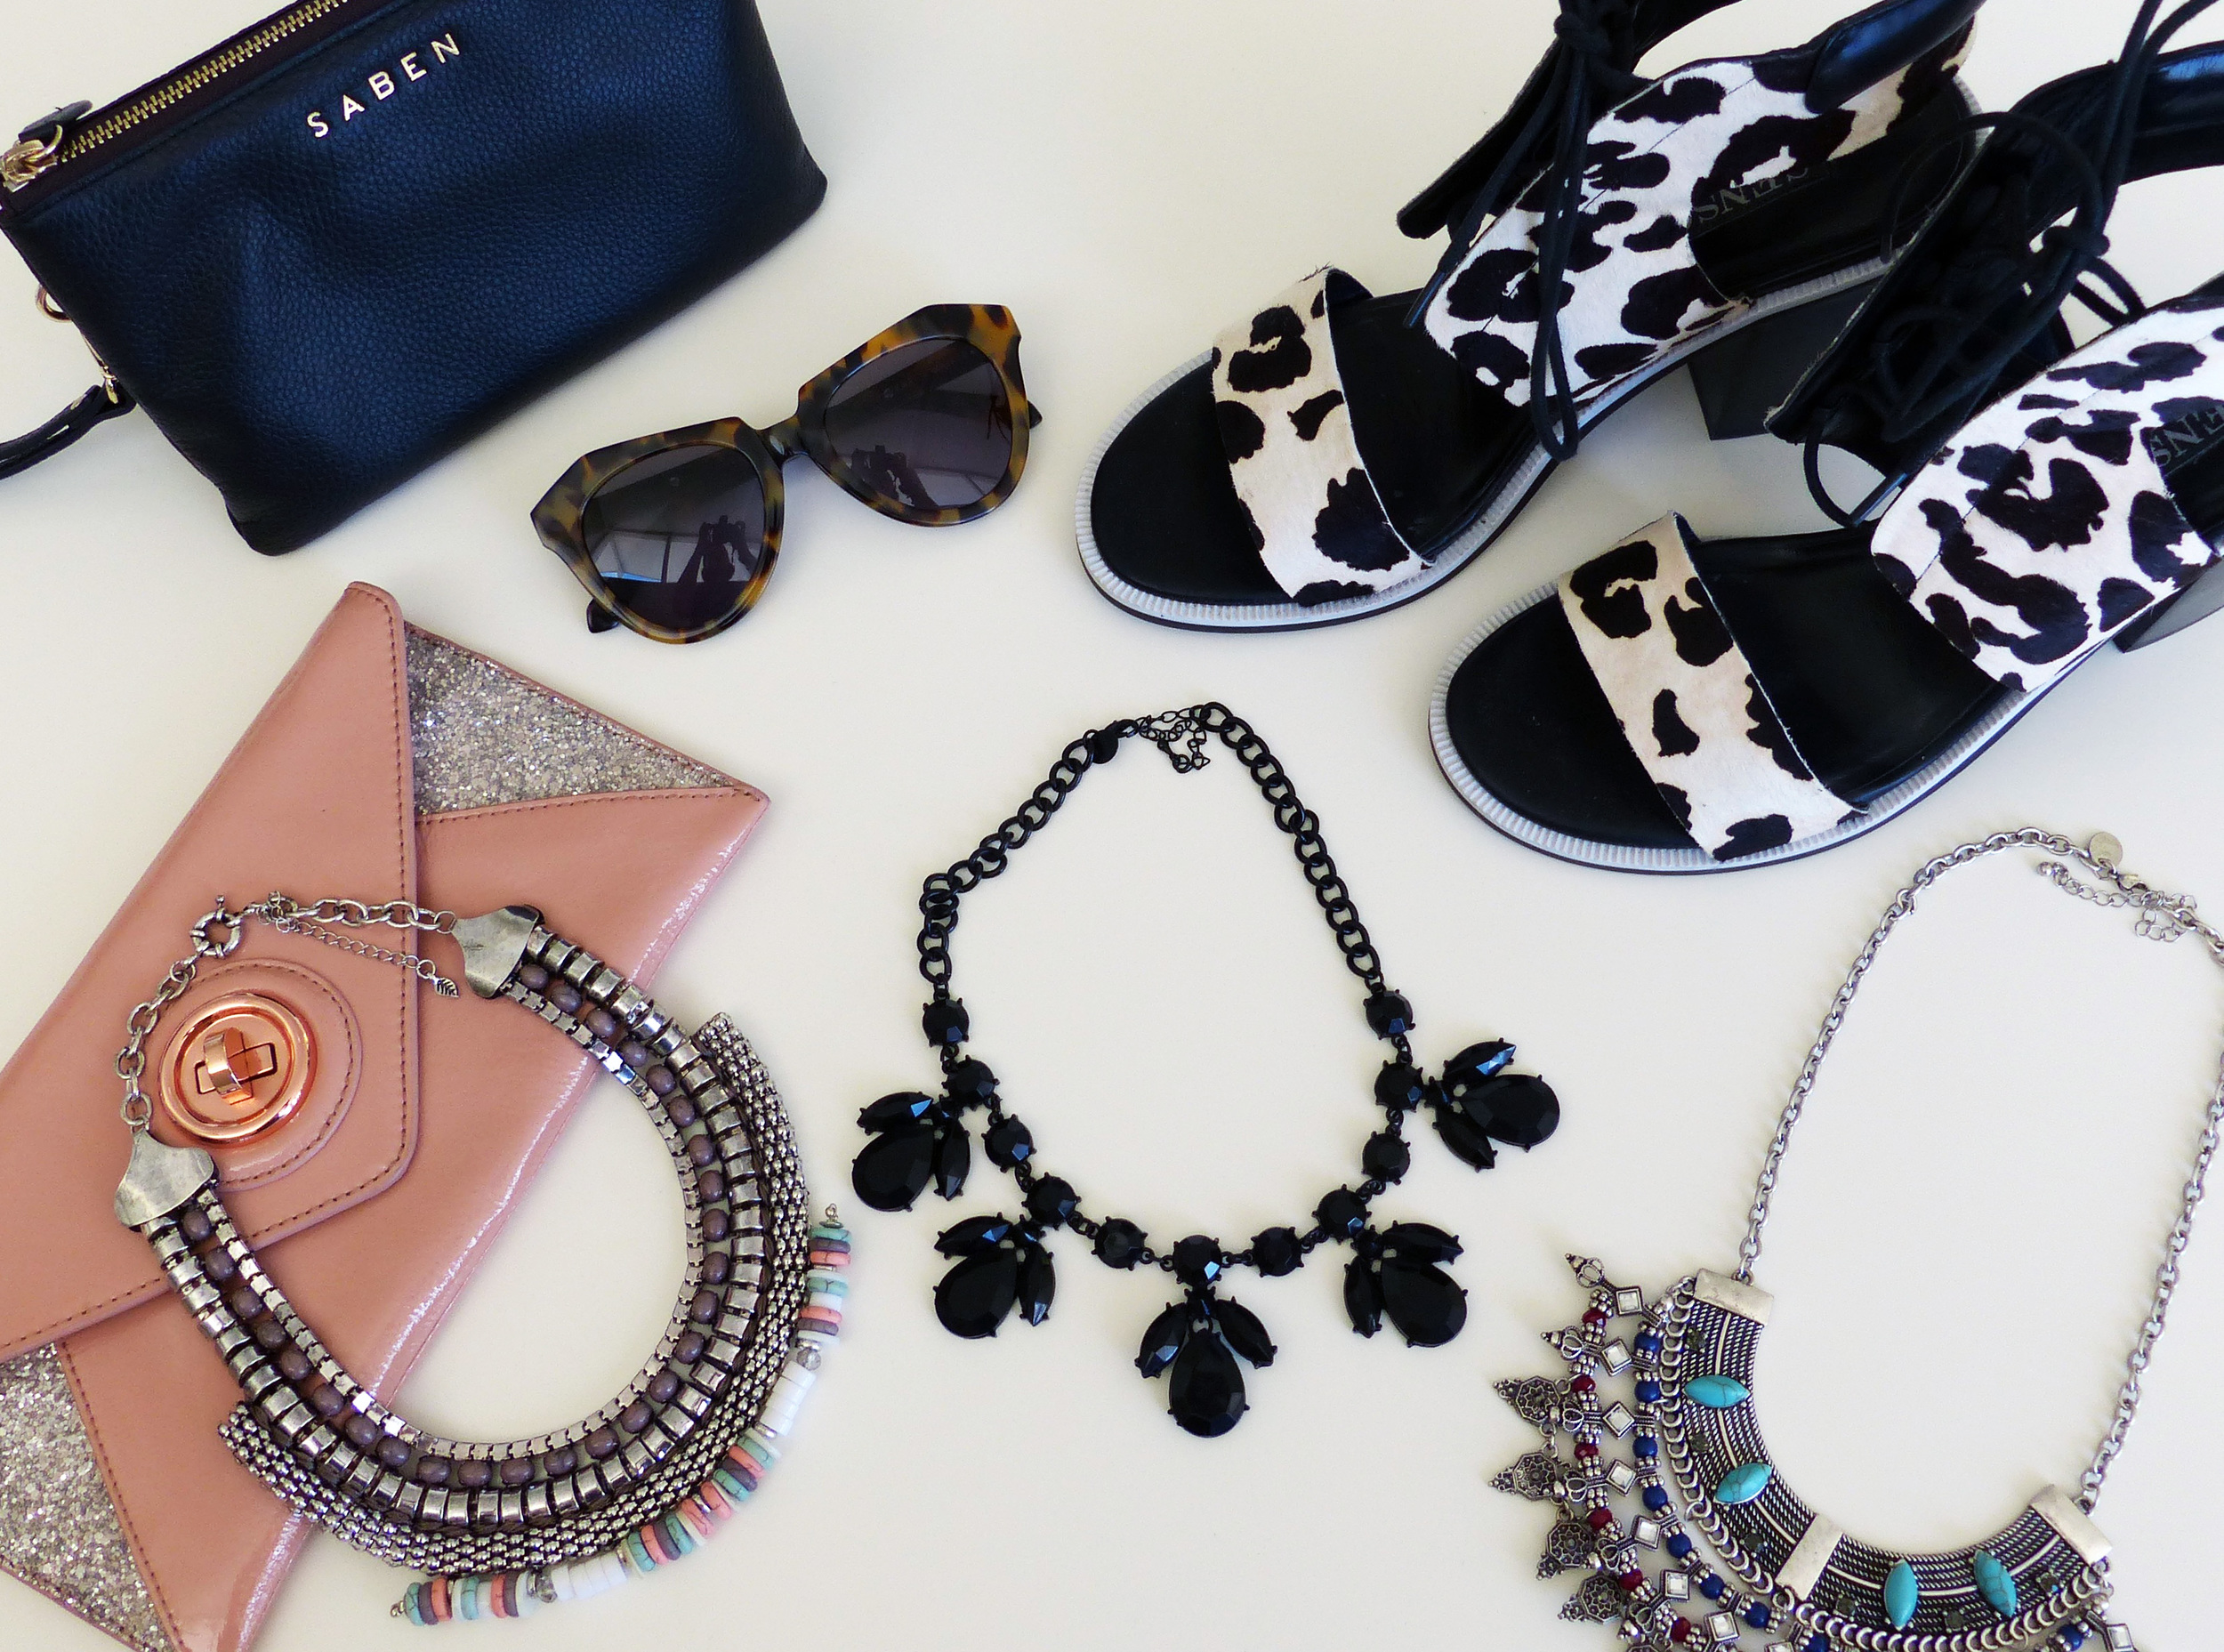 Saben 'Tilly' pouch, Karen Walker sunglasses, Senso heels, Mimco clutch, necklaces by Jeanwest, Lovisa and Equip.